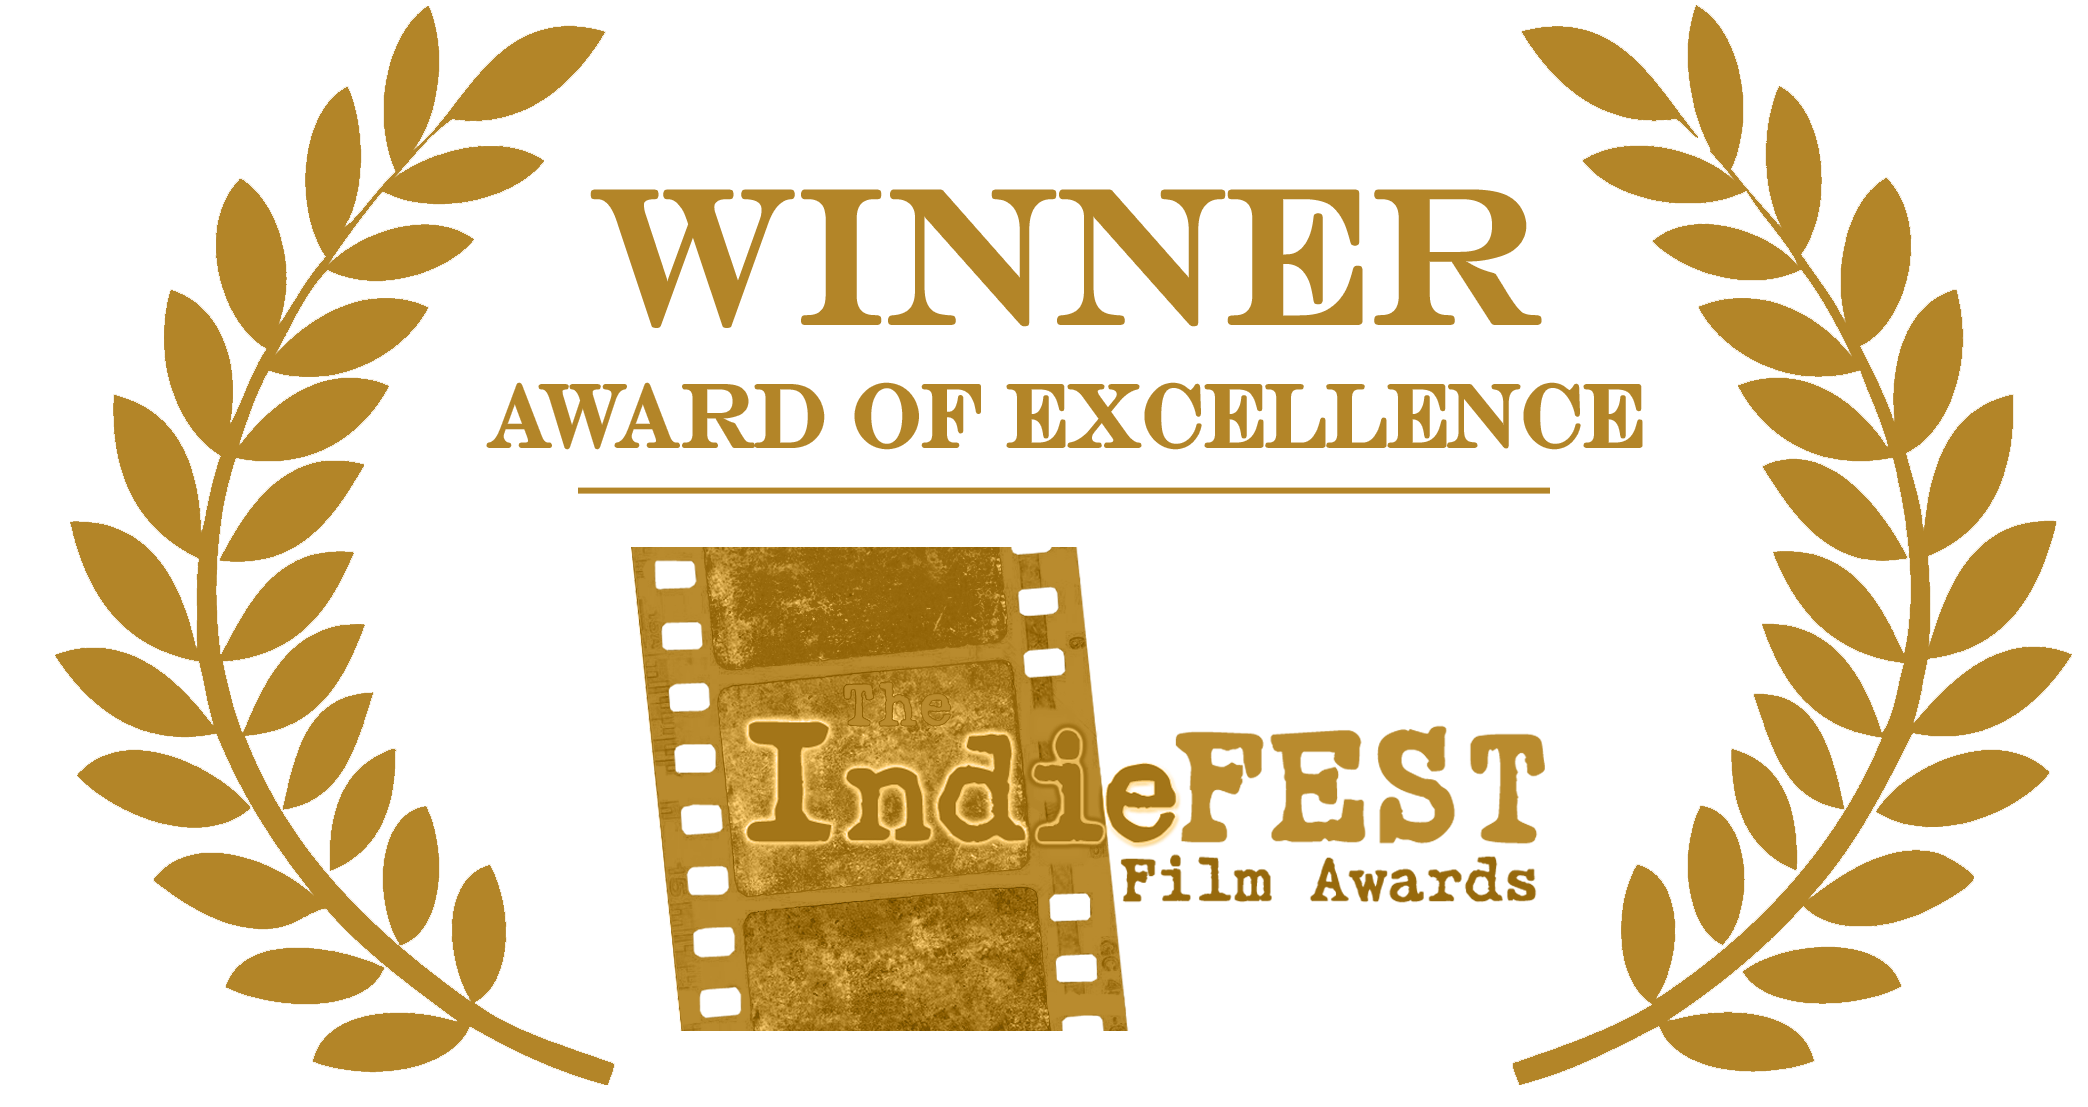 2014 Indiefest Award of Excellence